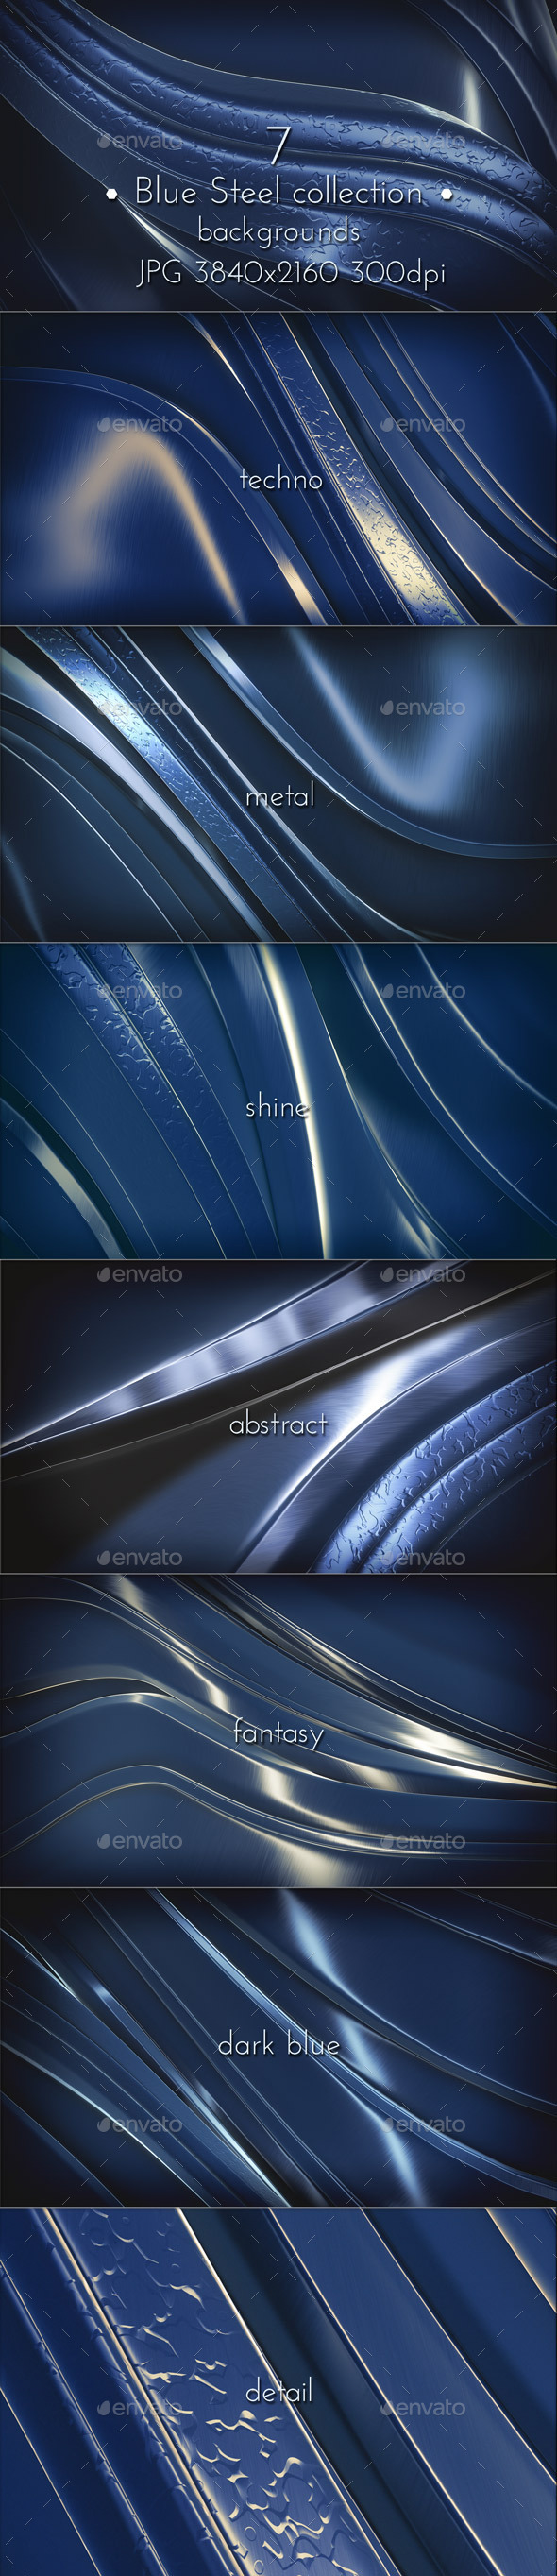 Dark Blue Steel Glossy Surface - Abstract Backgrounds